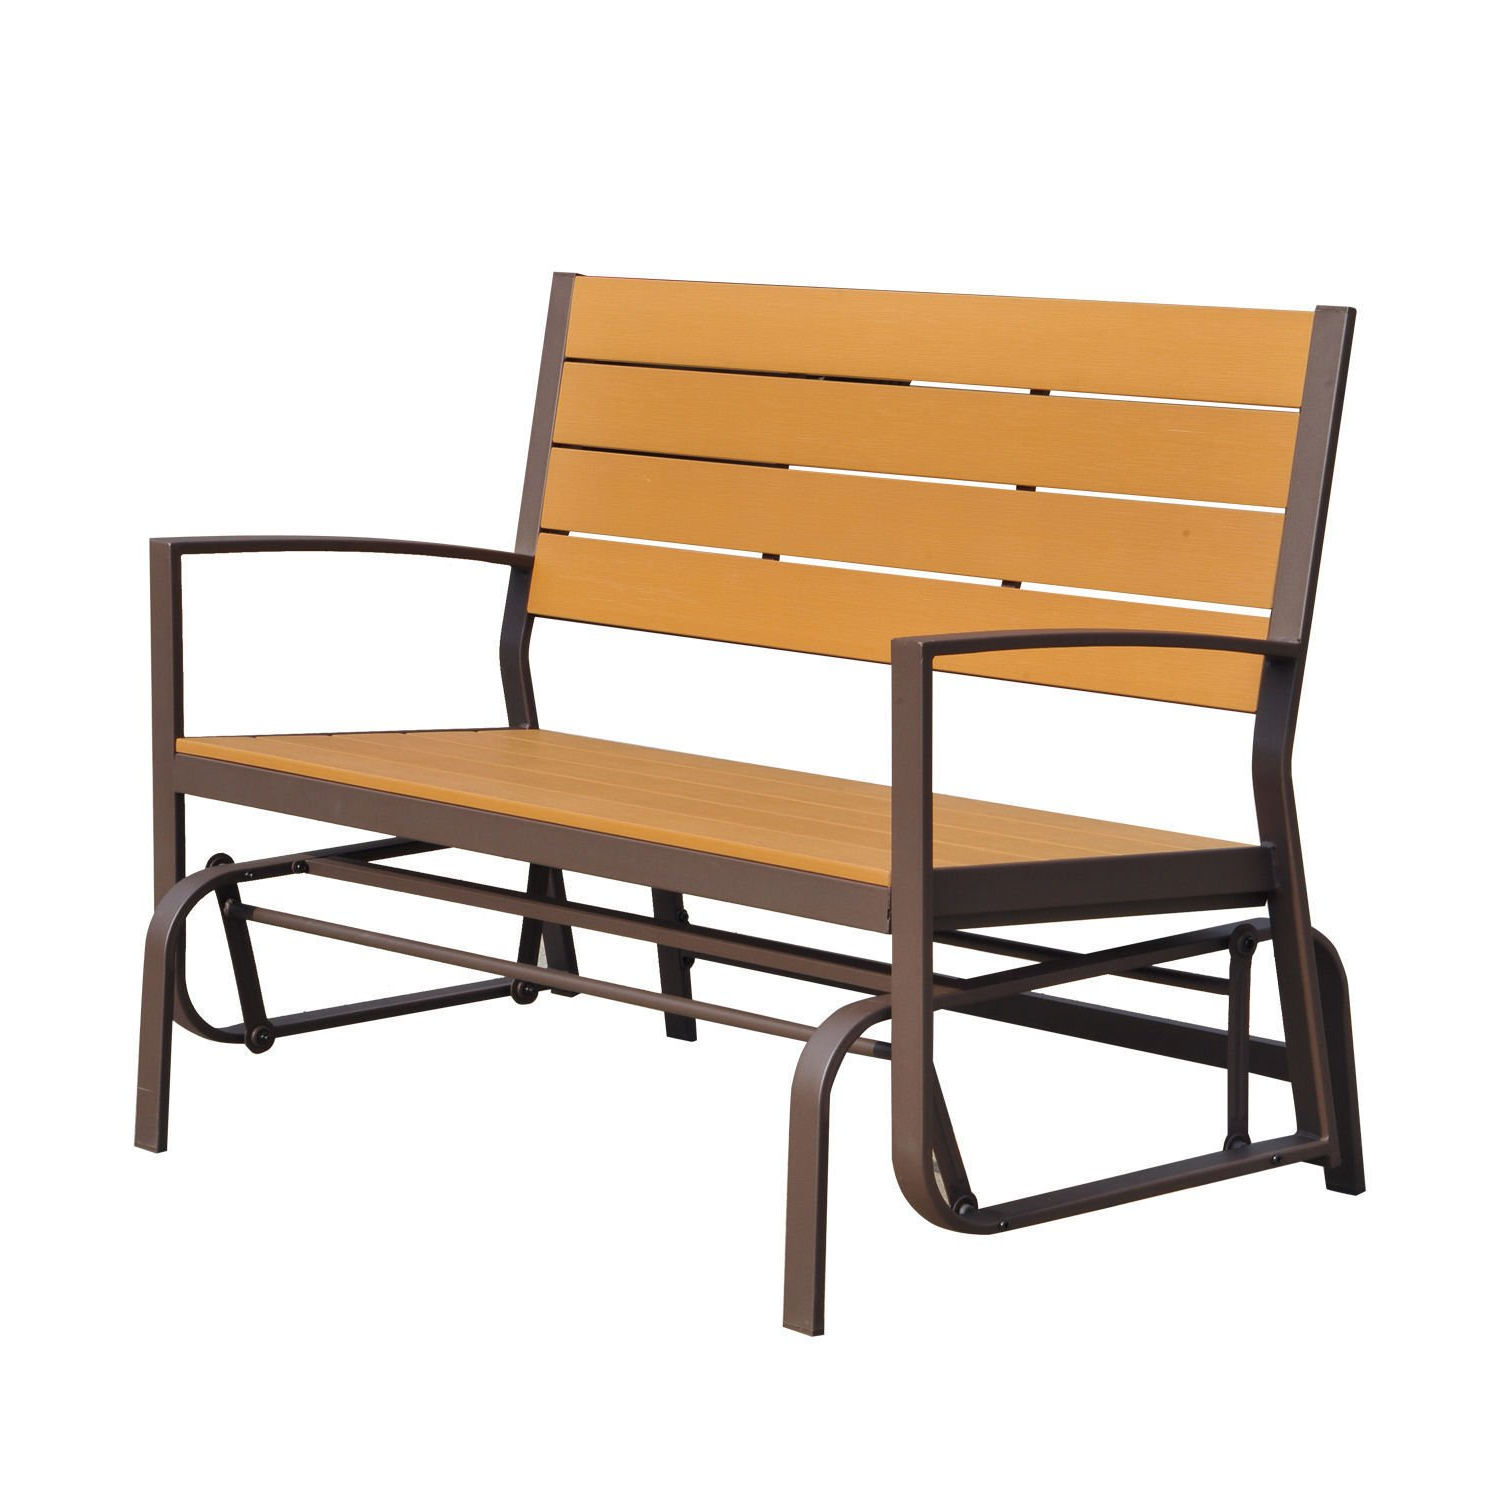 Teak Glider Benches Pertaining To Current Amazon : Globe House Products Ghp 700 Lbs Capacity Teak (Gallery 20 of 30)